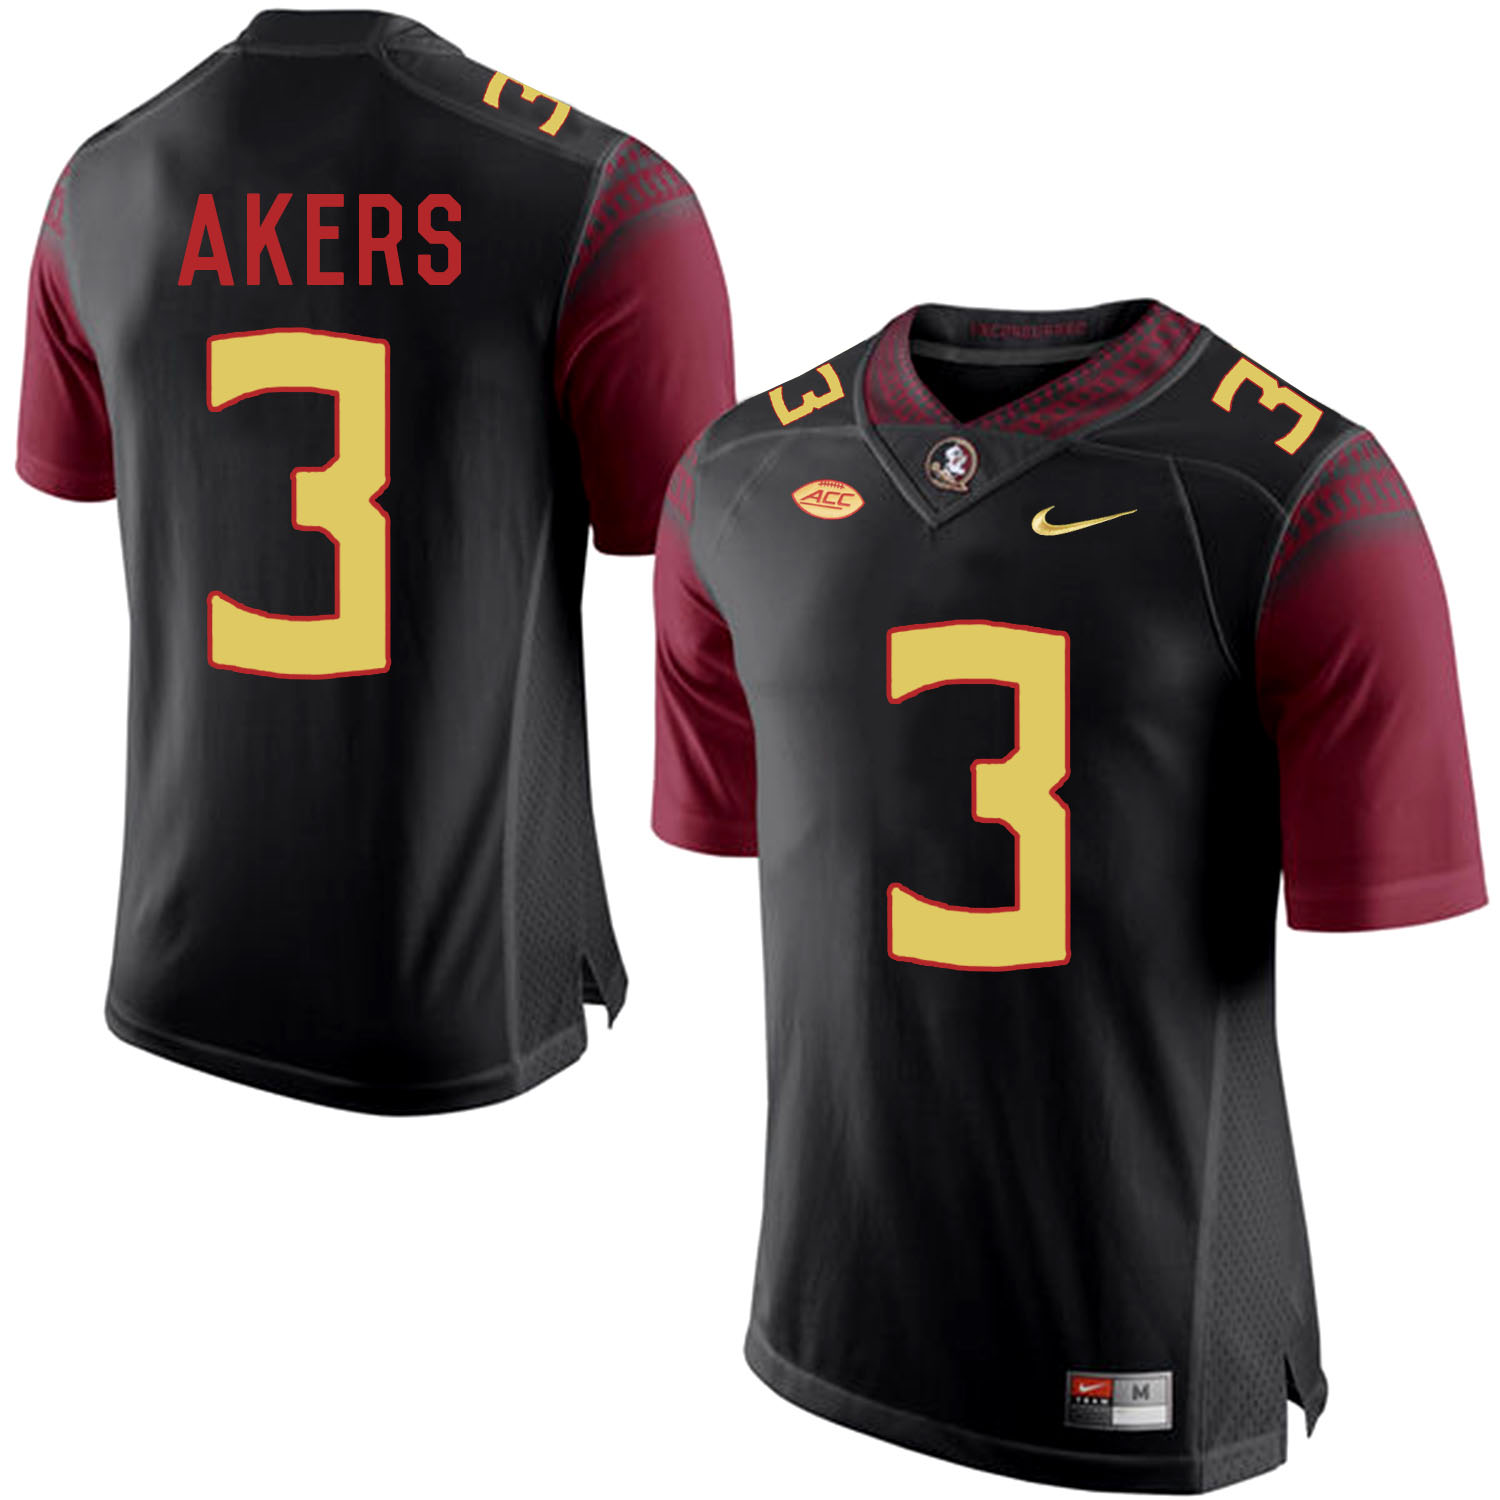 Florida State Seminoles 3 Cam Akers Black College Football Jersey